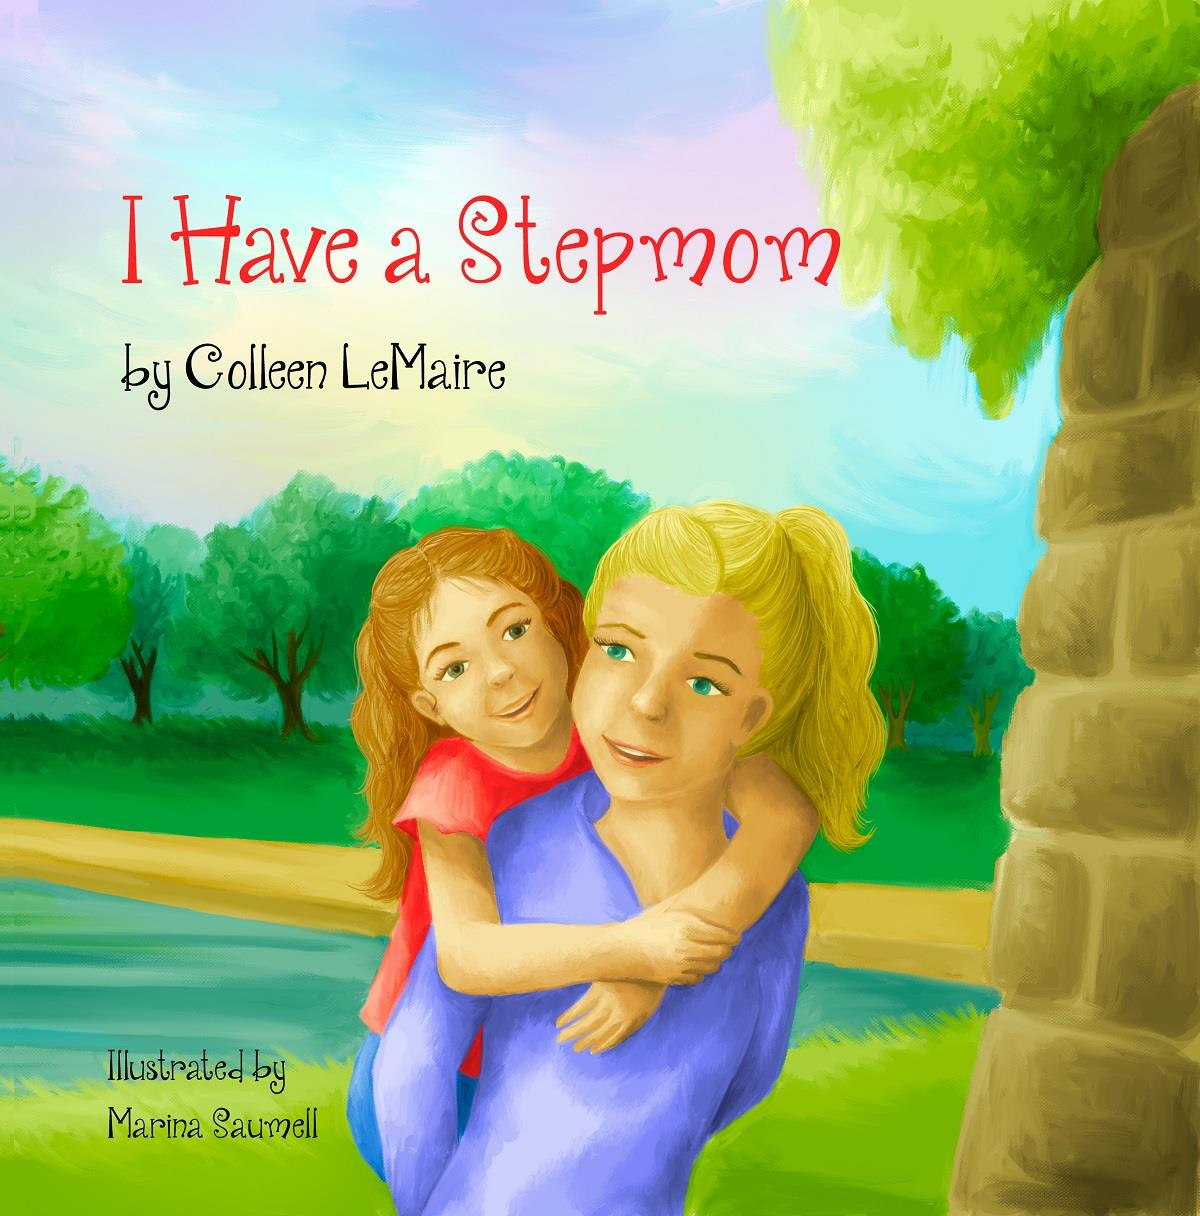 I Have a Stepmom cover